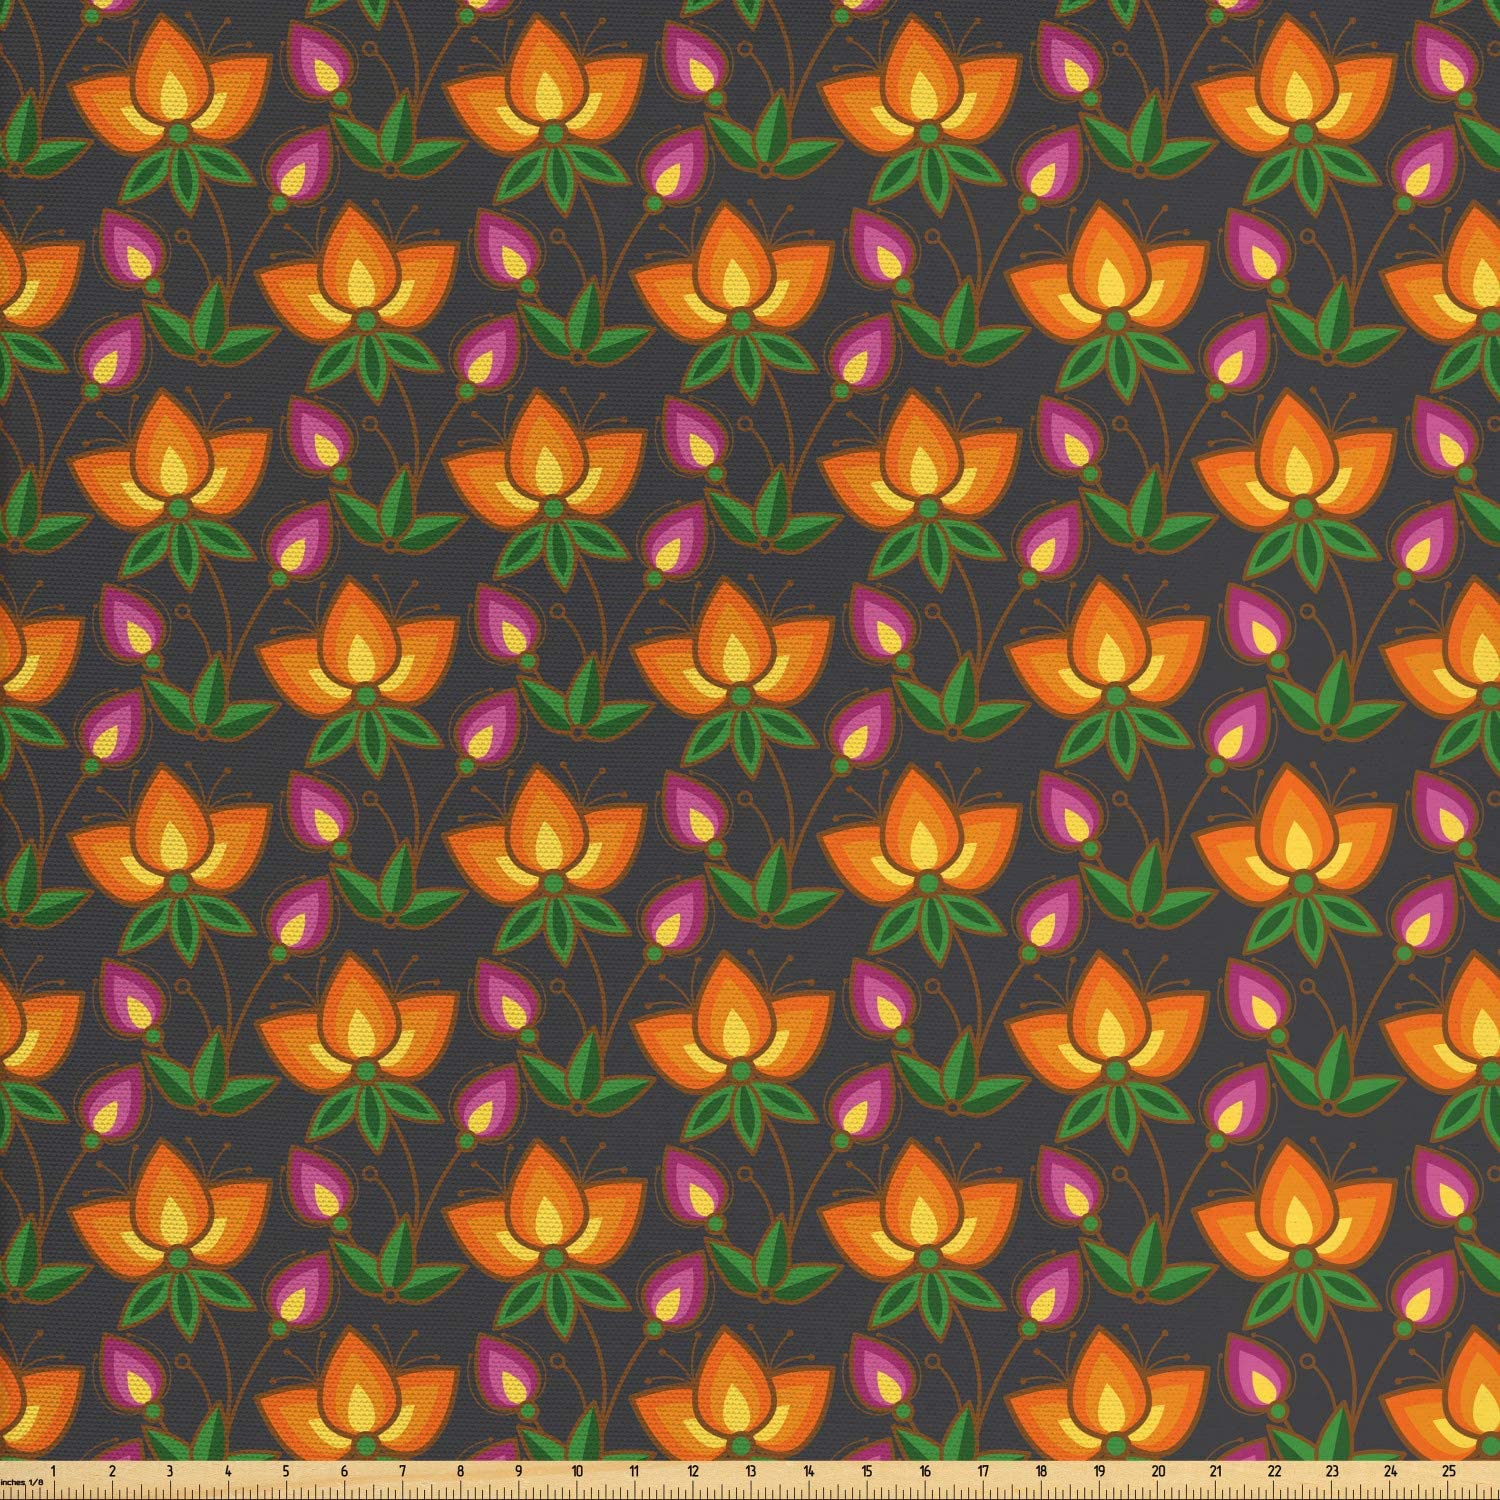 Ambesonne Floral Fabric by The Yard, Flowers Pattern with Leaves and Stems Flourishing Tangerine Violet Tones, Decorative Fabric for Upholstery and Home Accents, 1 Yard, Mustard and Multicolor